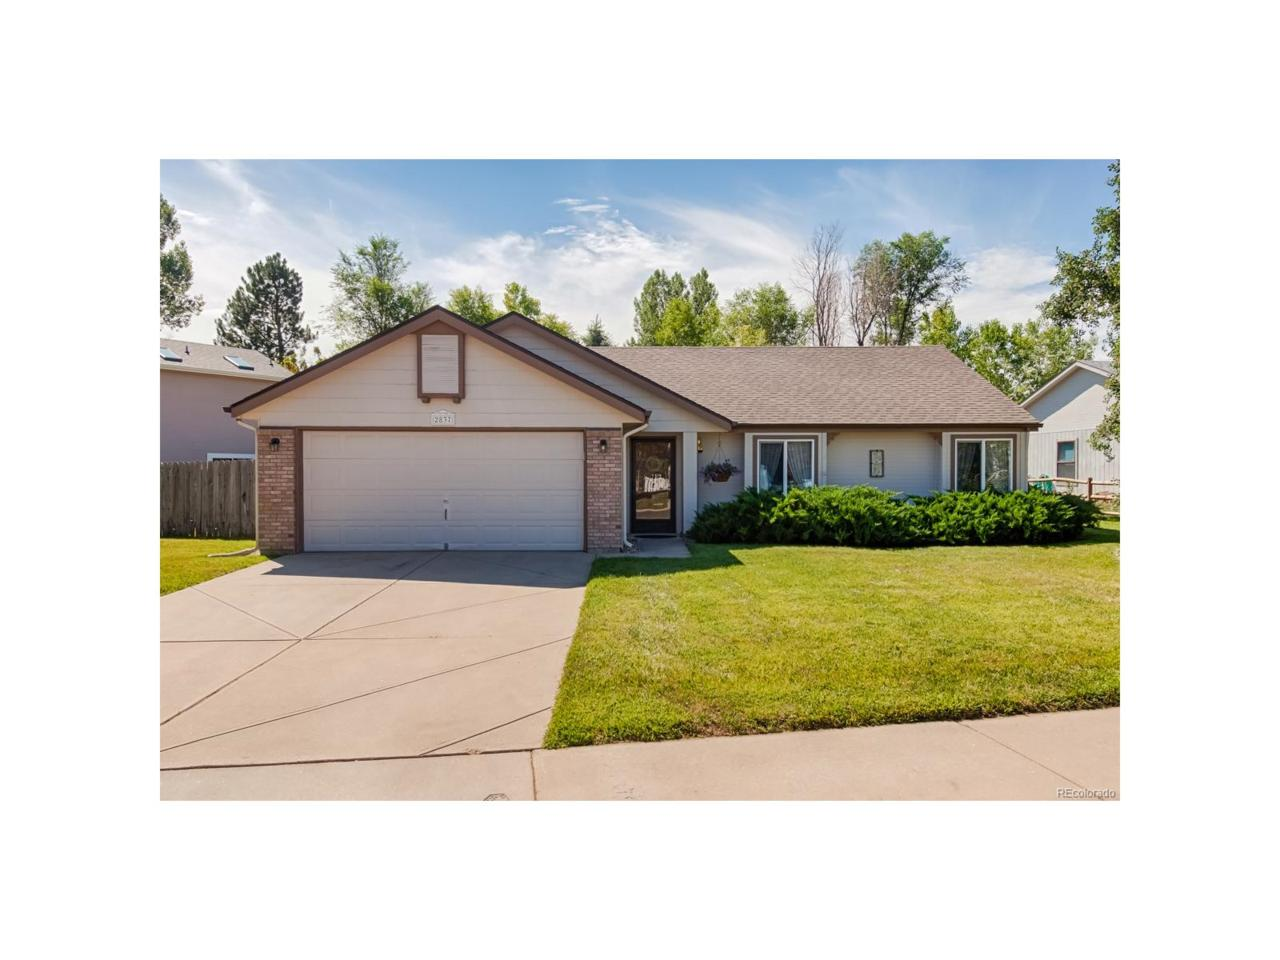 2837 Virginia Dale Drive, Fort Collins, CO 80521 (MLS #8982330) :: 8z Real Estate